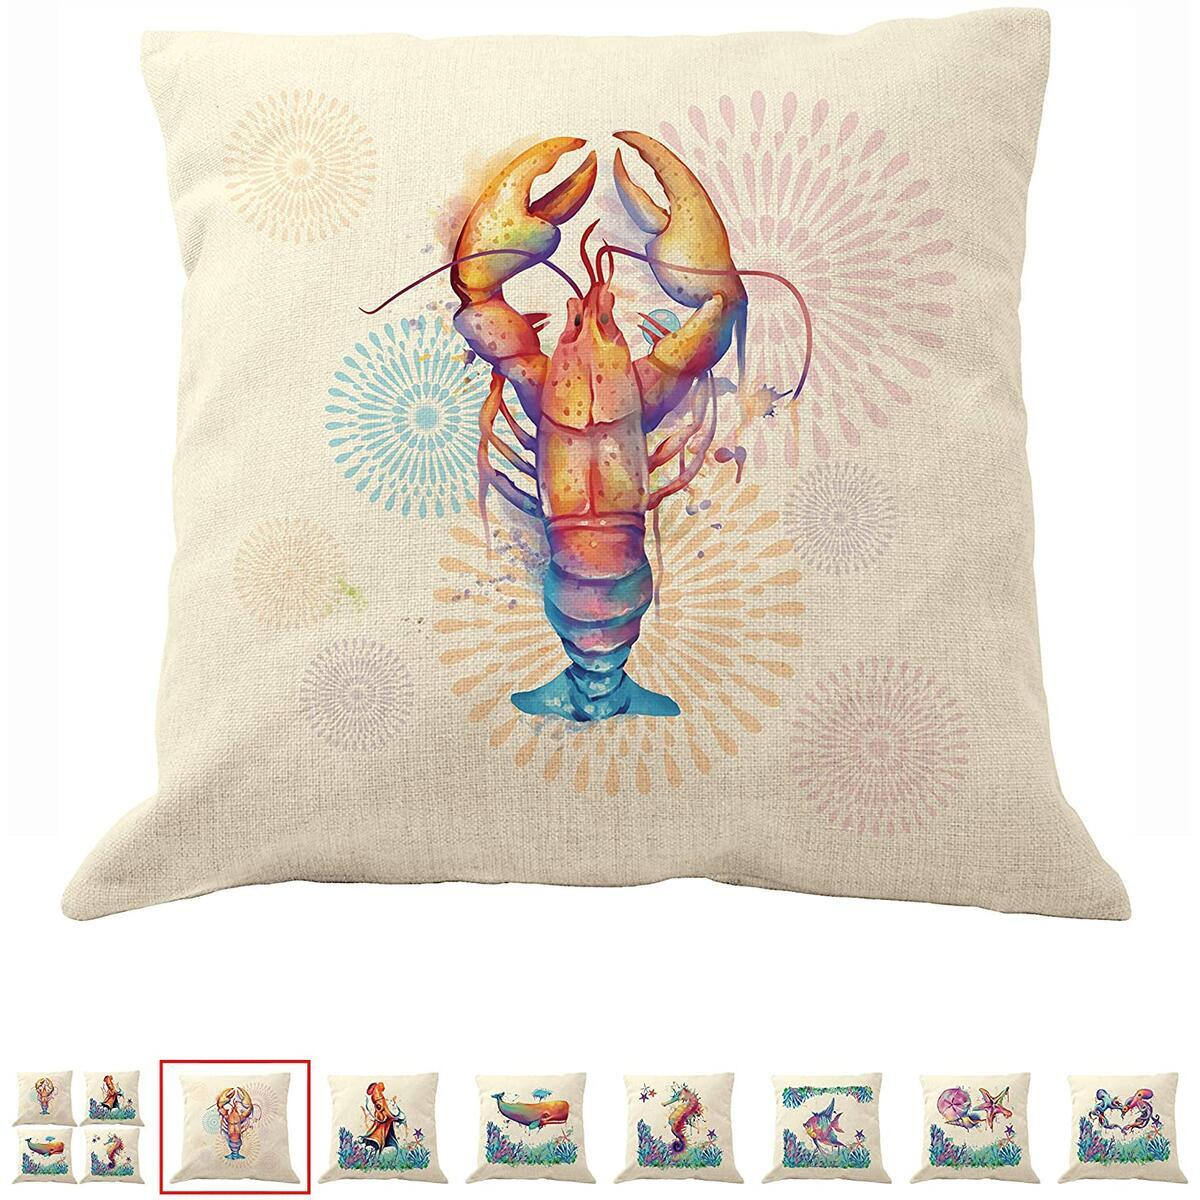 DrupsCo 18x18 Lobster Pillow Cover for Couches - Lobster Decor Pillow Cover, Cotton Linen Coastal Decor Beach Theme Pillow Covers